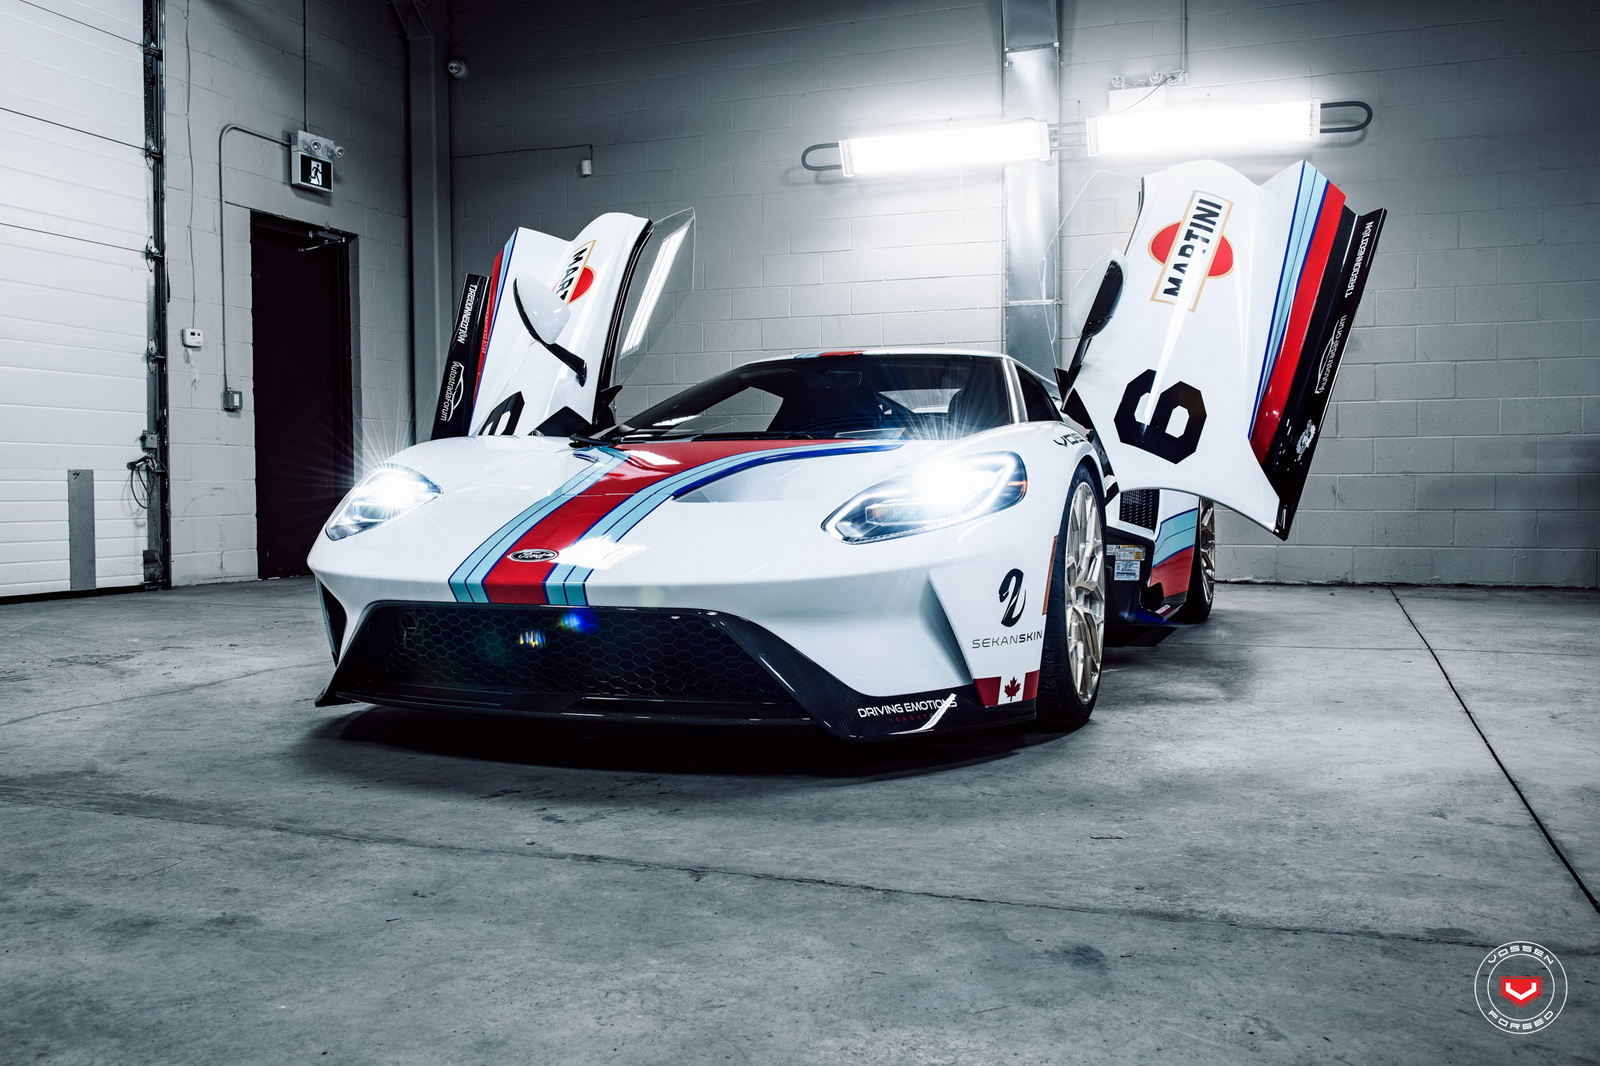 ford-gt-martini-livery-vossen-wheels-16